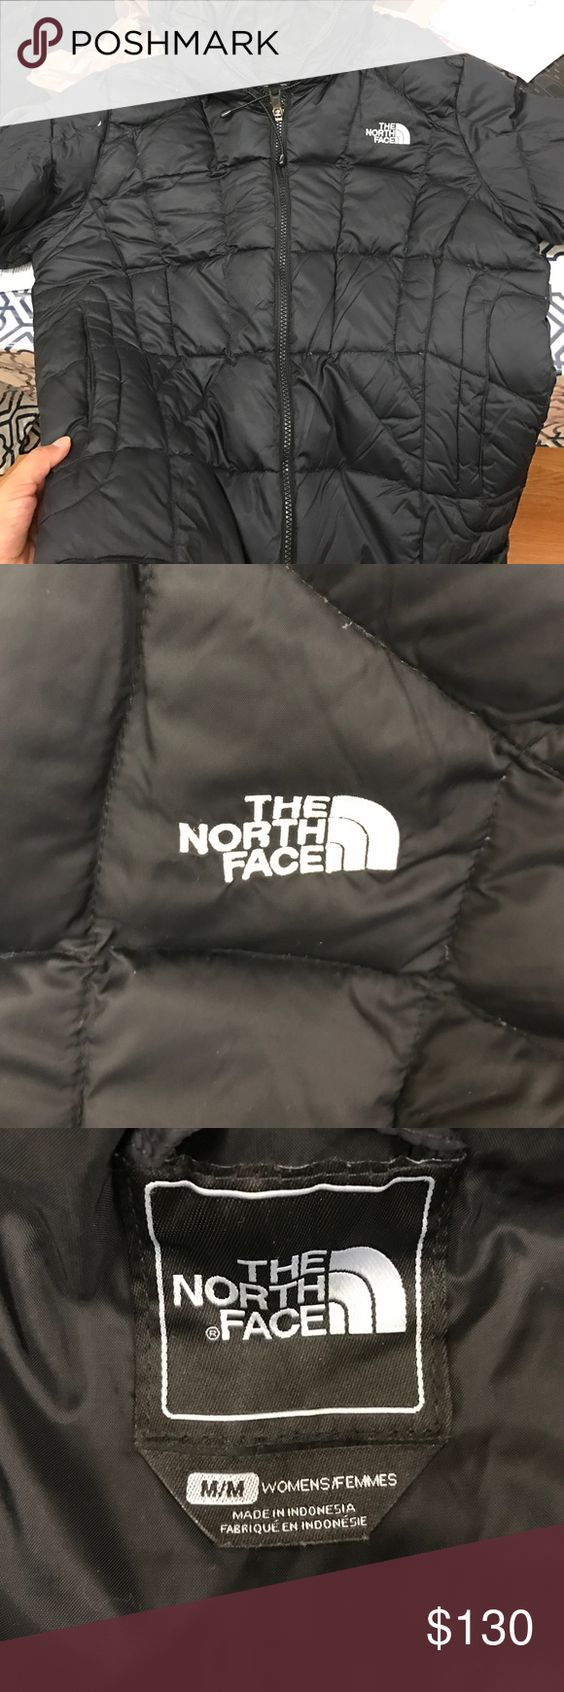 The north face black jacket Black jackets for ladies . Waterproof , secure zip hand pockets. Used jacket not for long time. Looks new . North Face Jackets & Coats Puffers